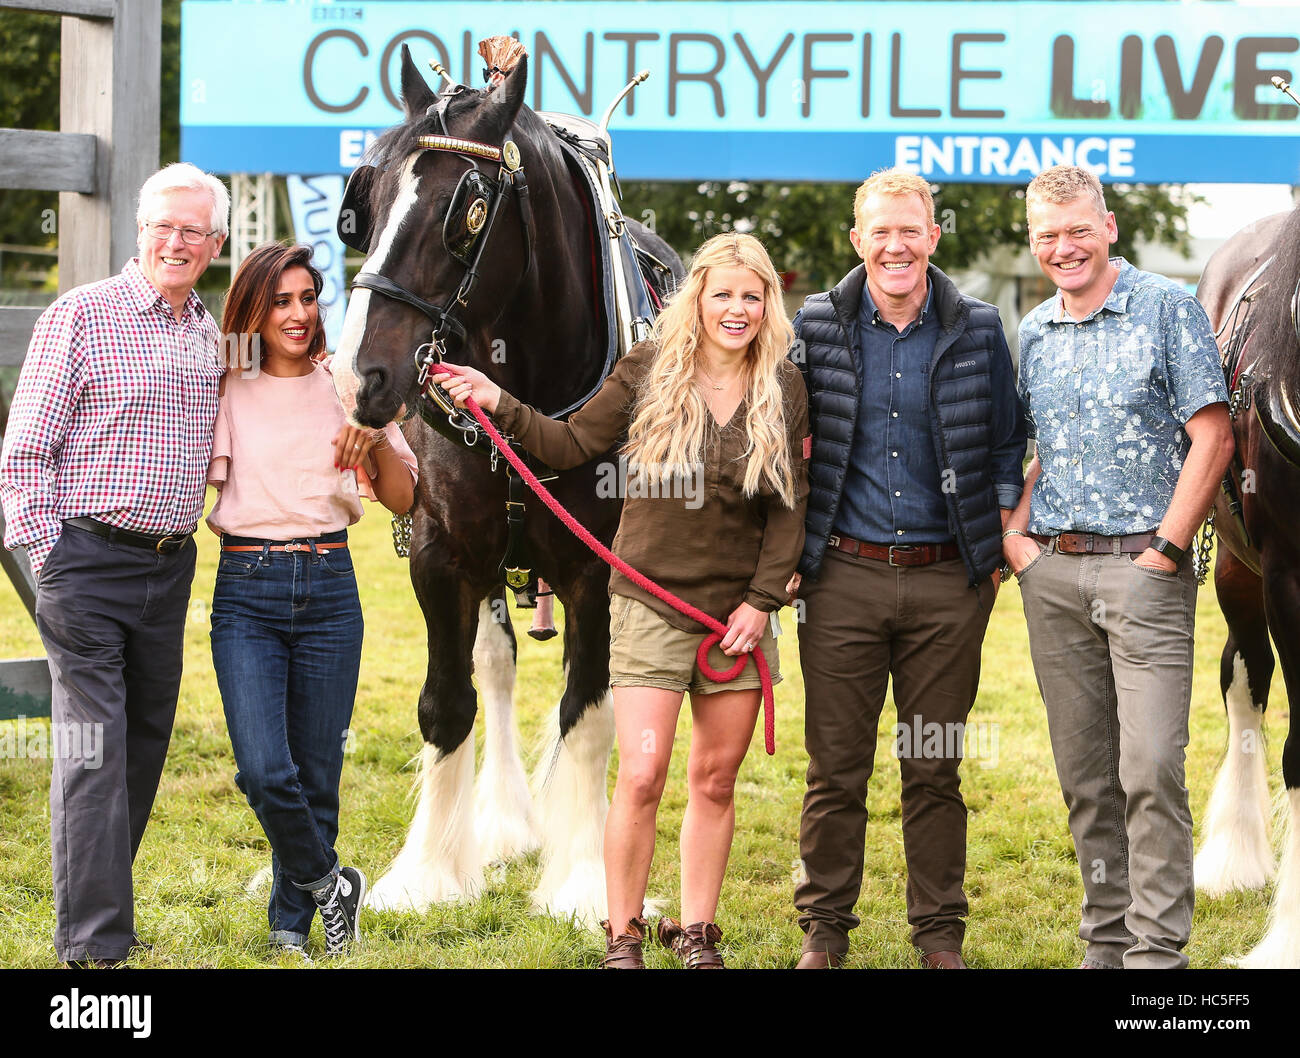 Countryfile presenters attend a photocall during Countryfile Live at Blenheim Palace  Featuring: John Craven, Anita - Stock Image